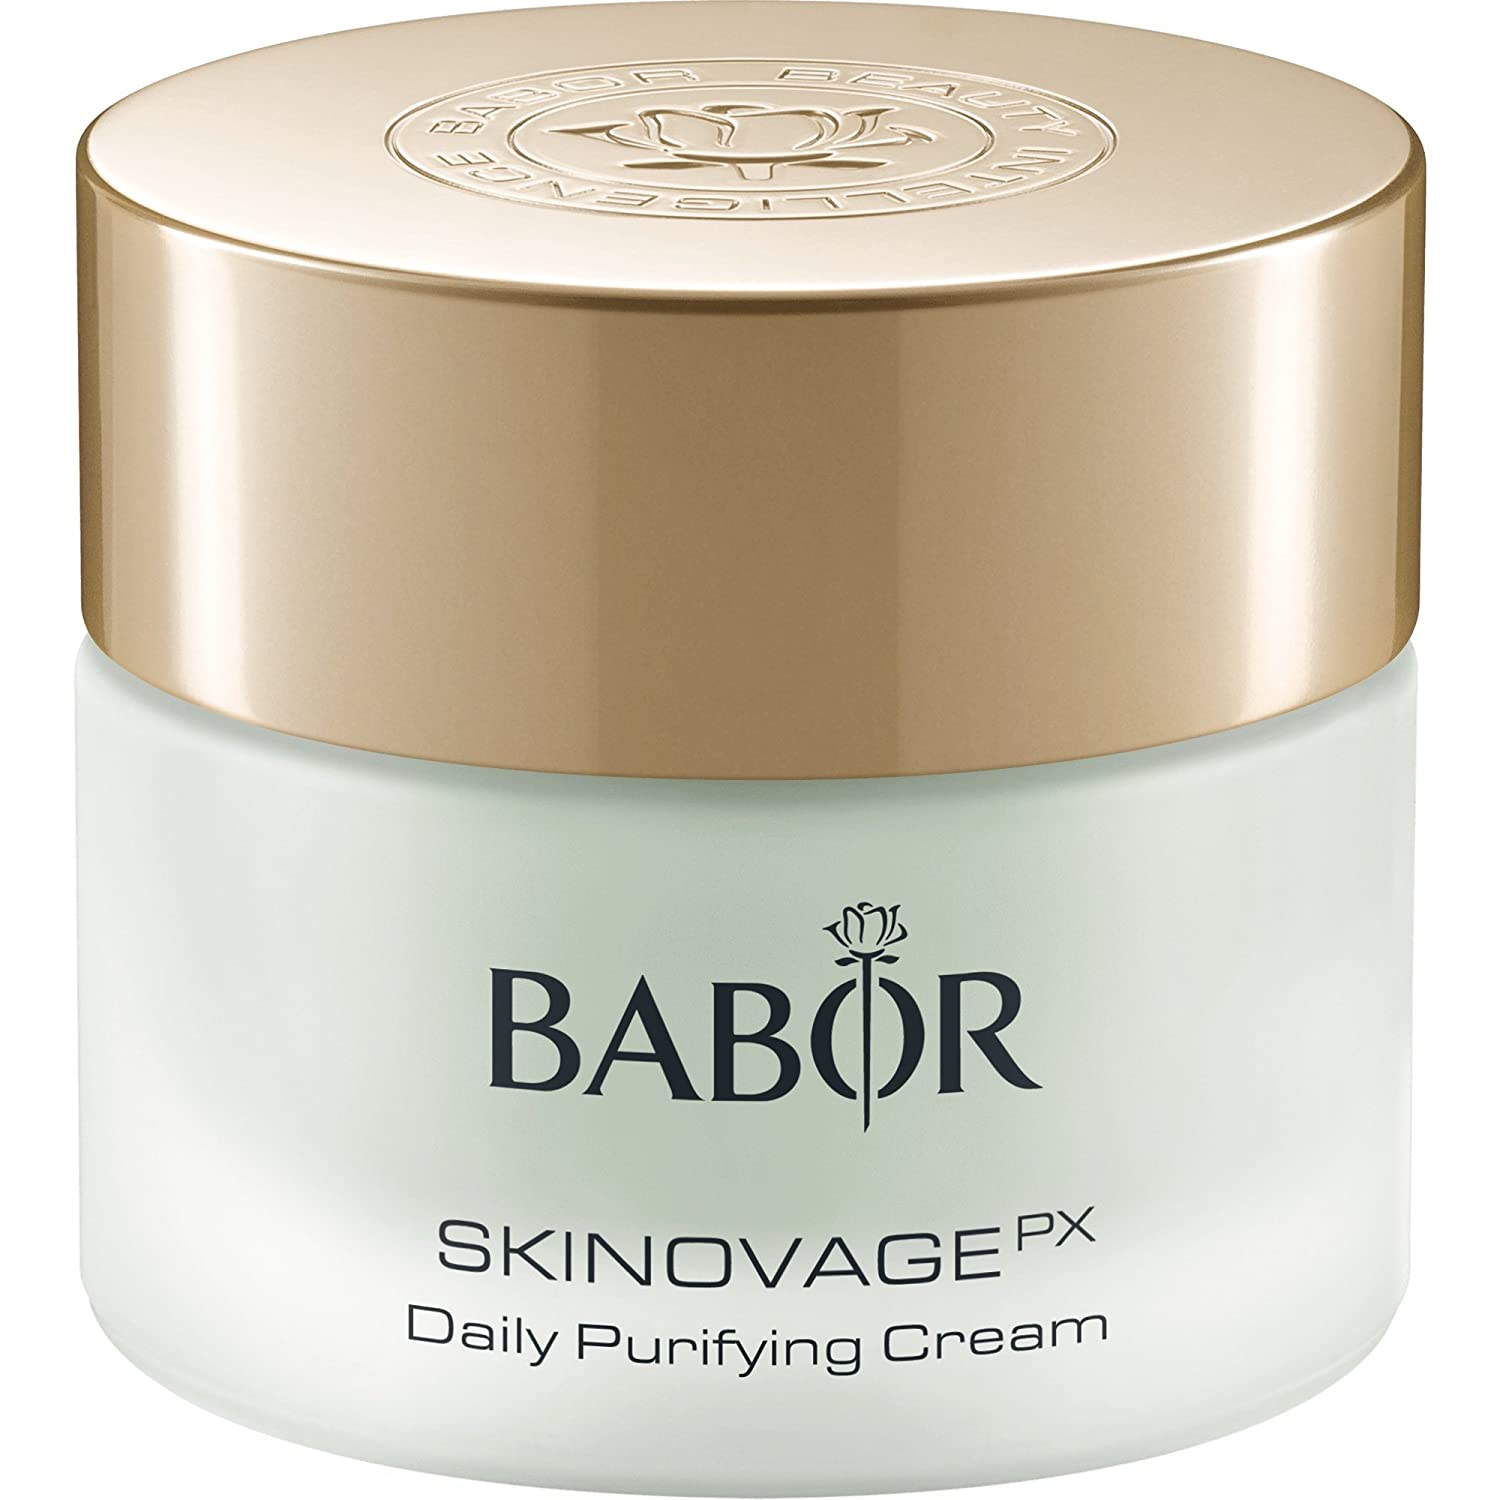 Babor - Skinovage PX Pure Intense Purifying Cream (For Problem Skin) - 50ml/1.7oz Alphanova Bebe ART0010 Moisturizing Cream for Baby Mild Dryness Face & Body with Organic Sweet Almond Oil - 100 ml